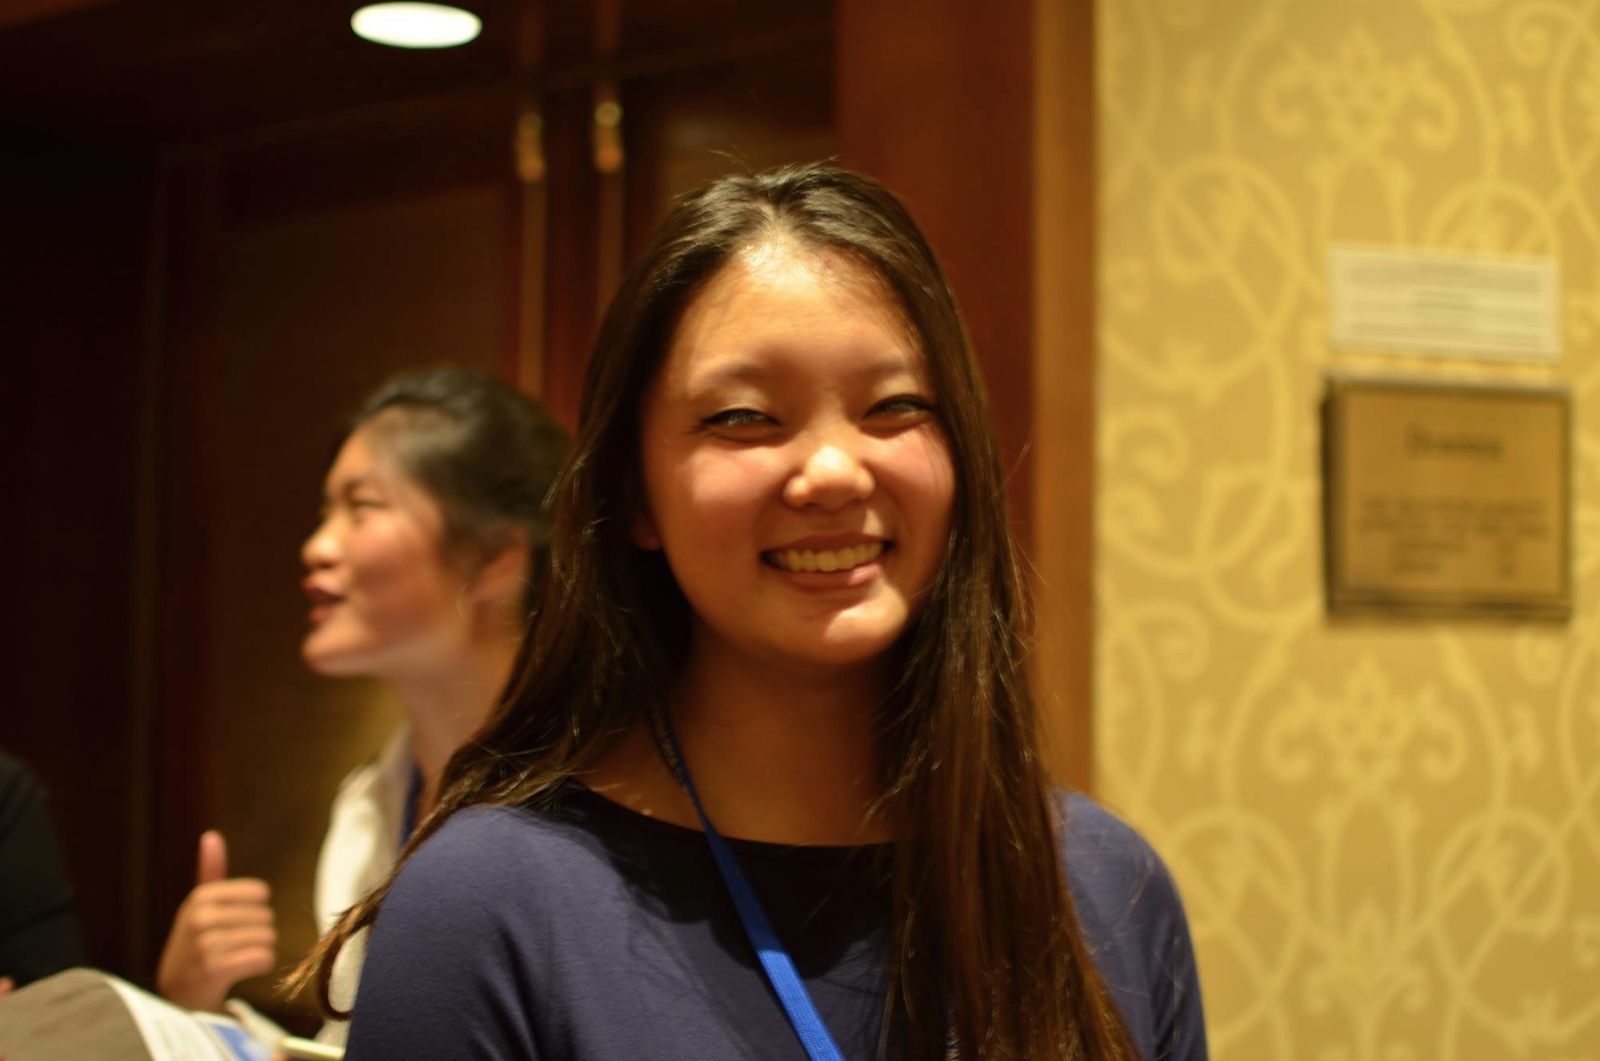 Unafraid: senior Emily Cao learns to conquer her fears